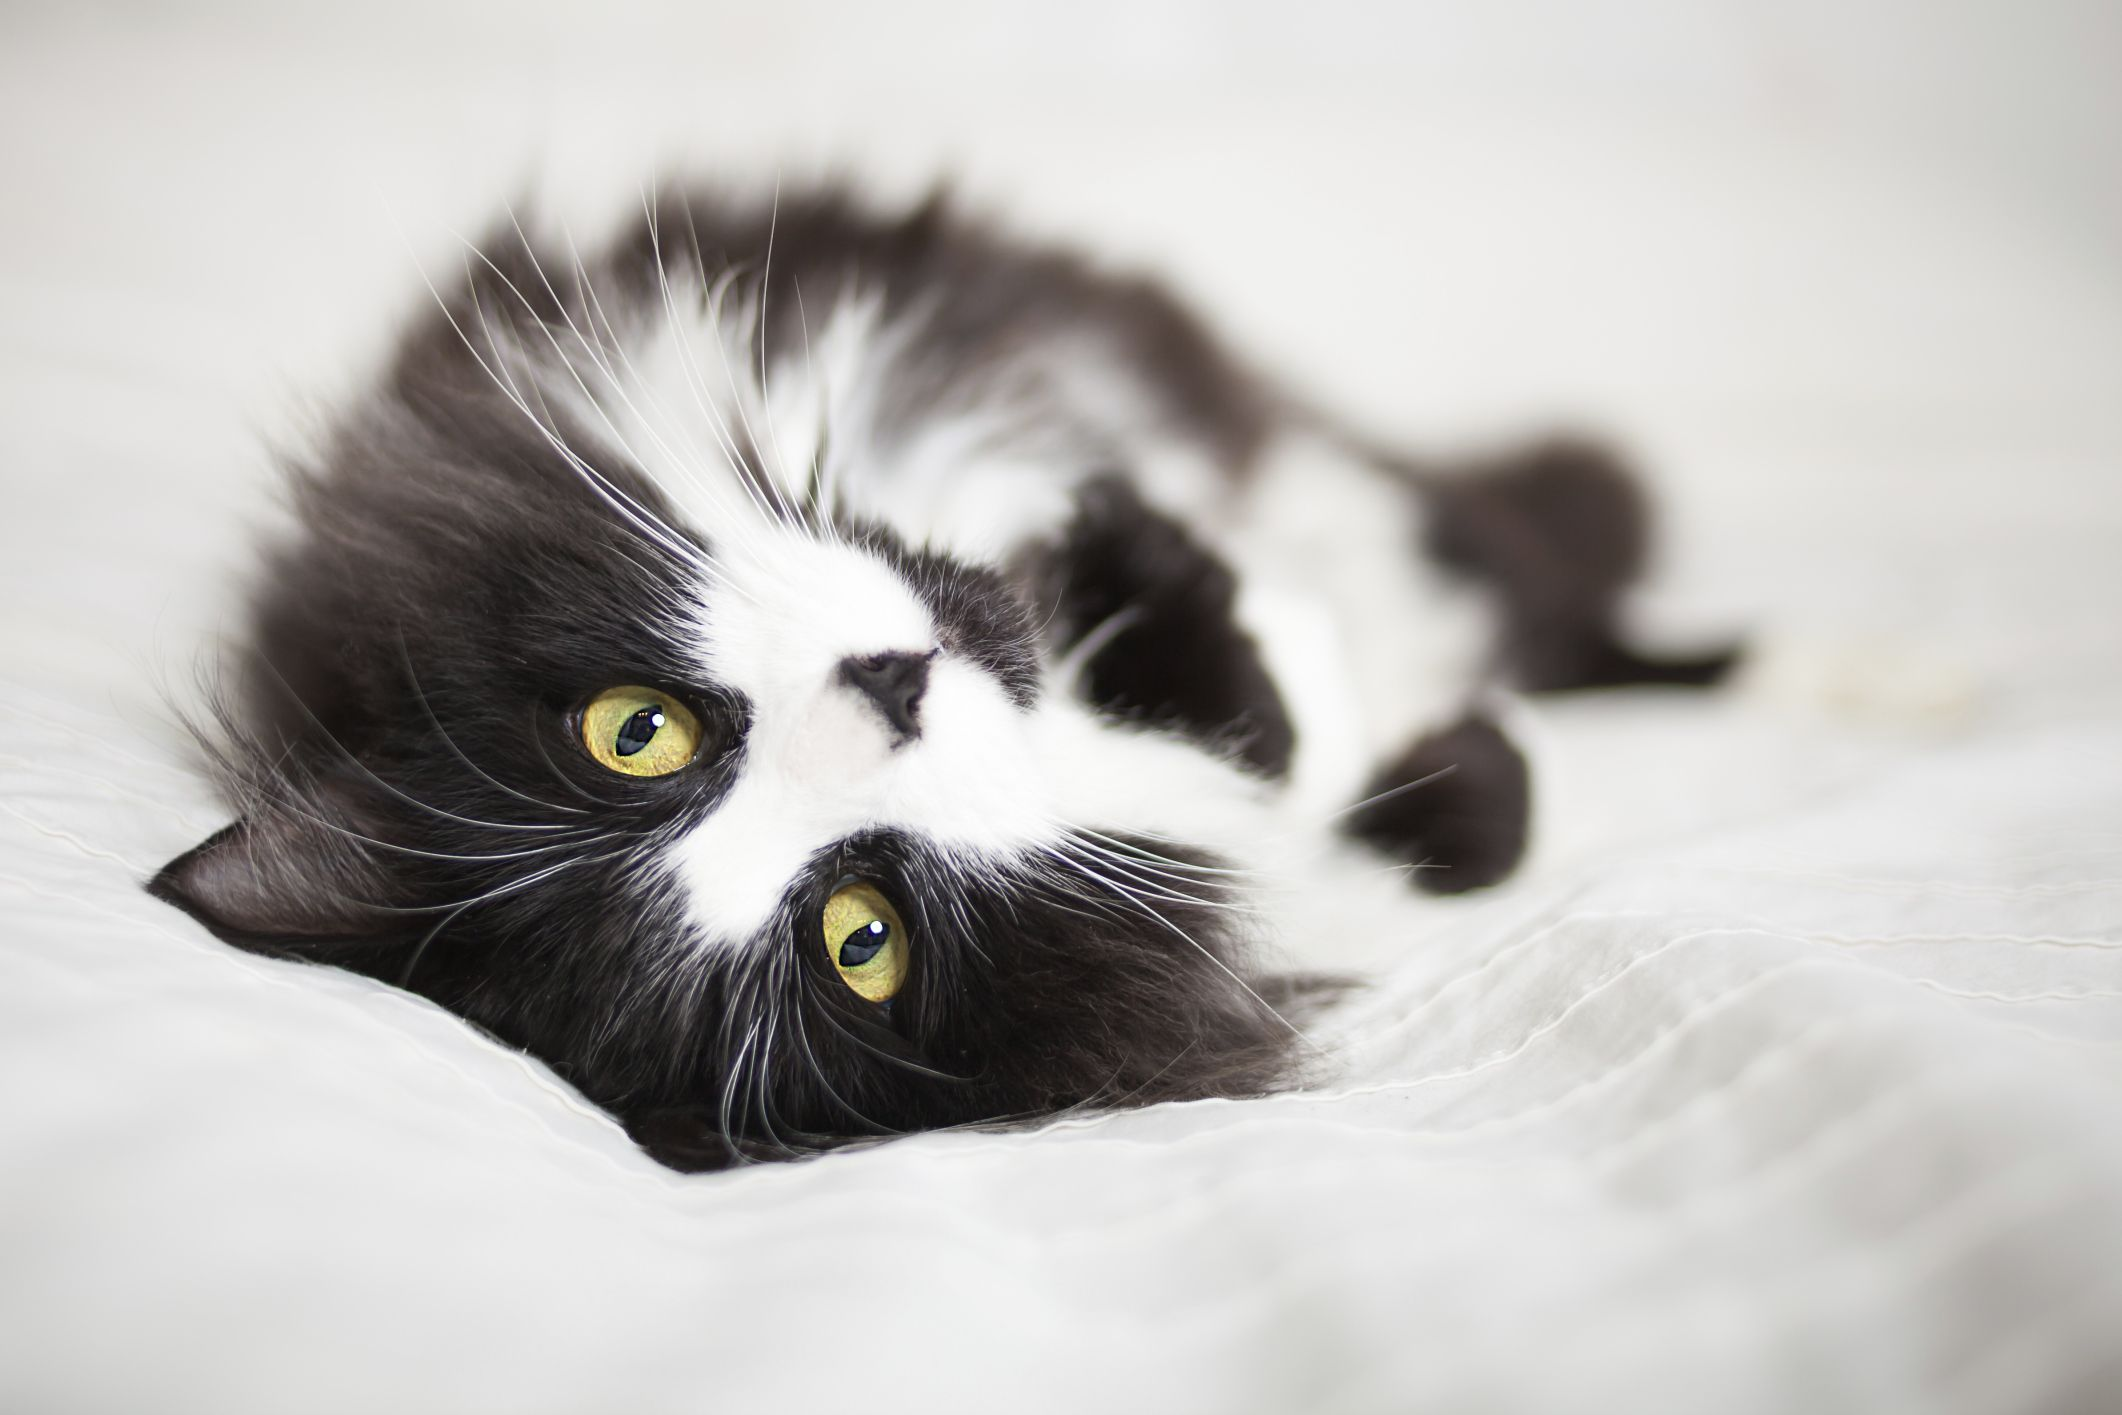 Even At Her Most Relaxed A Tuxedo Cat Always Has A Formal Air About Her White Cat Breeds Black Cat Breeds American Shorthair Cat